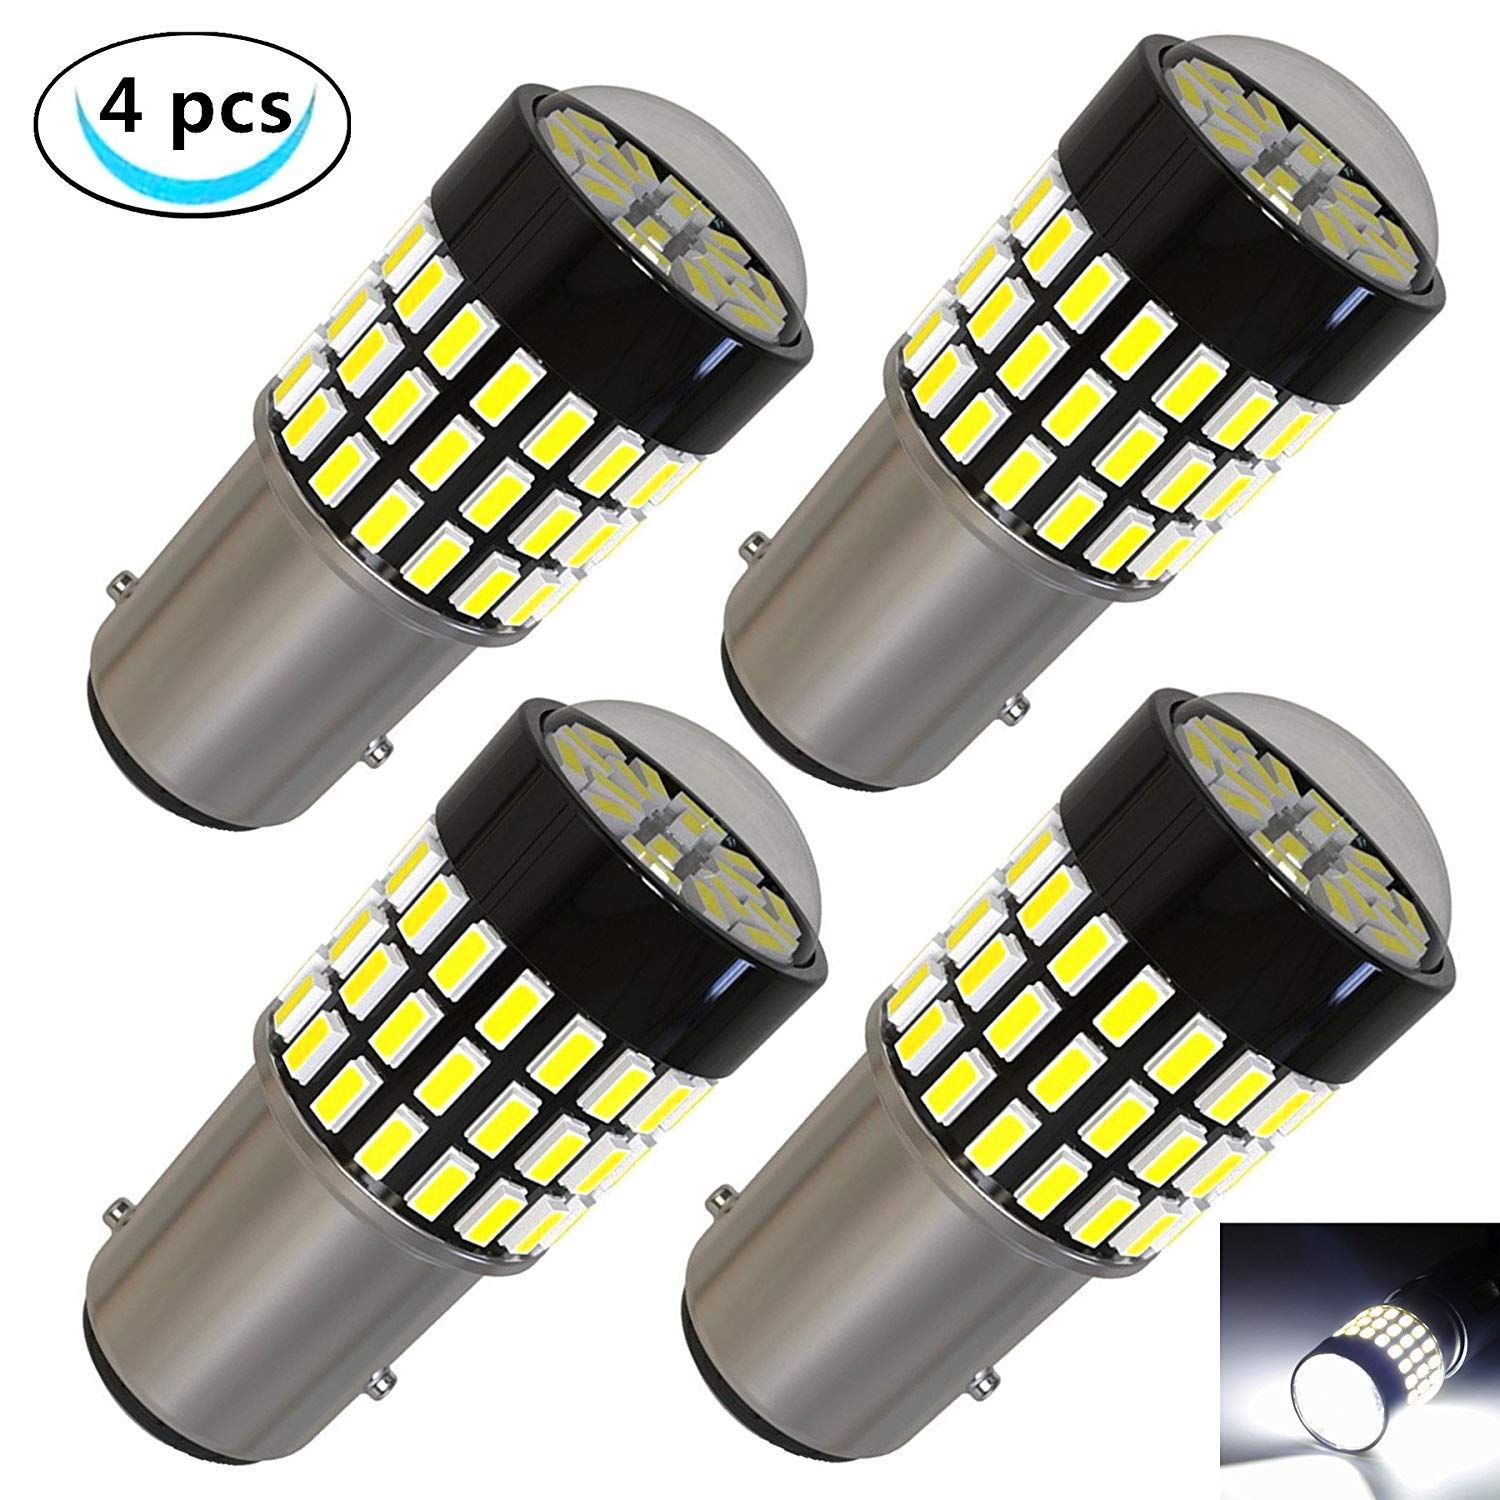 LABBYWAY 4 Pcs Super Bright 900 Lumens 1157 3014 78-EX Chipsets 1157 2057 2357 7528 LED Bulbs Used For Turn Signal Lights,Tail Lights,Xenon White